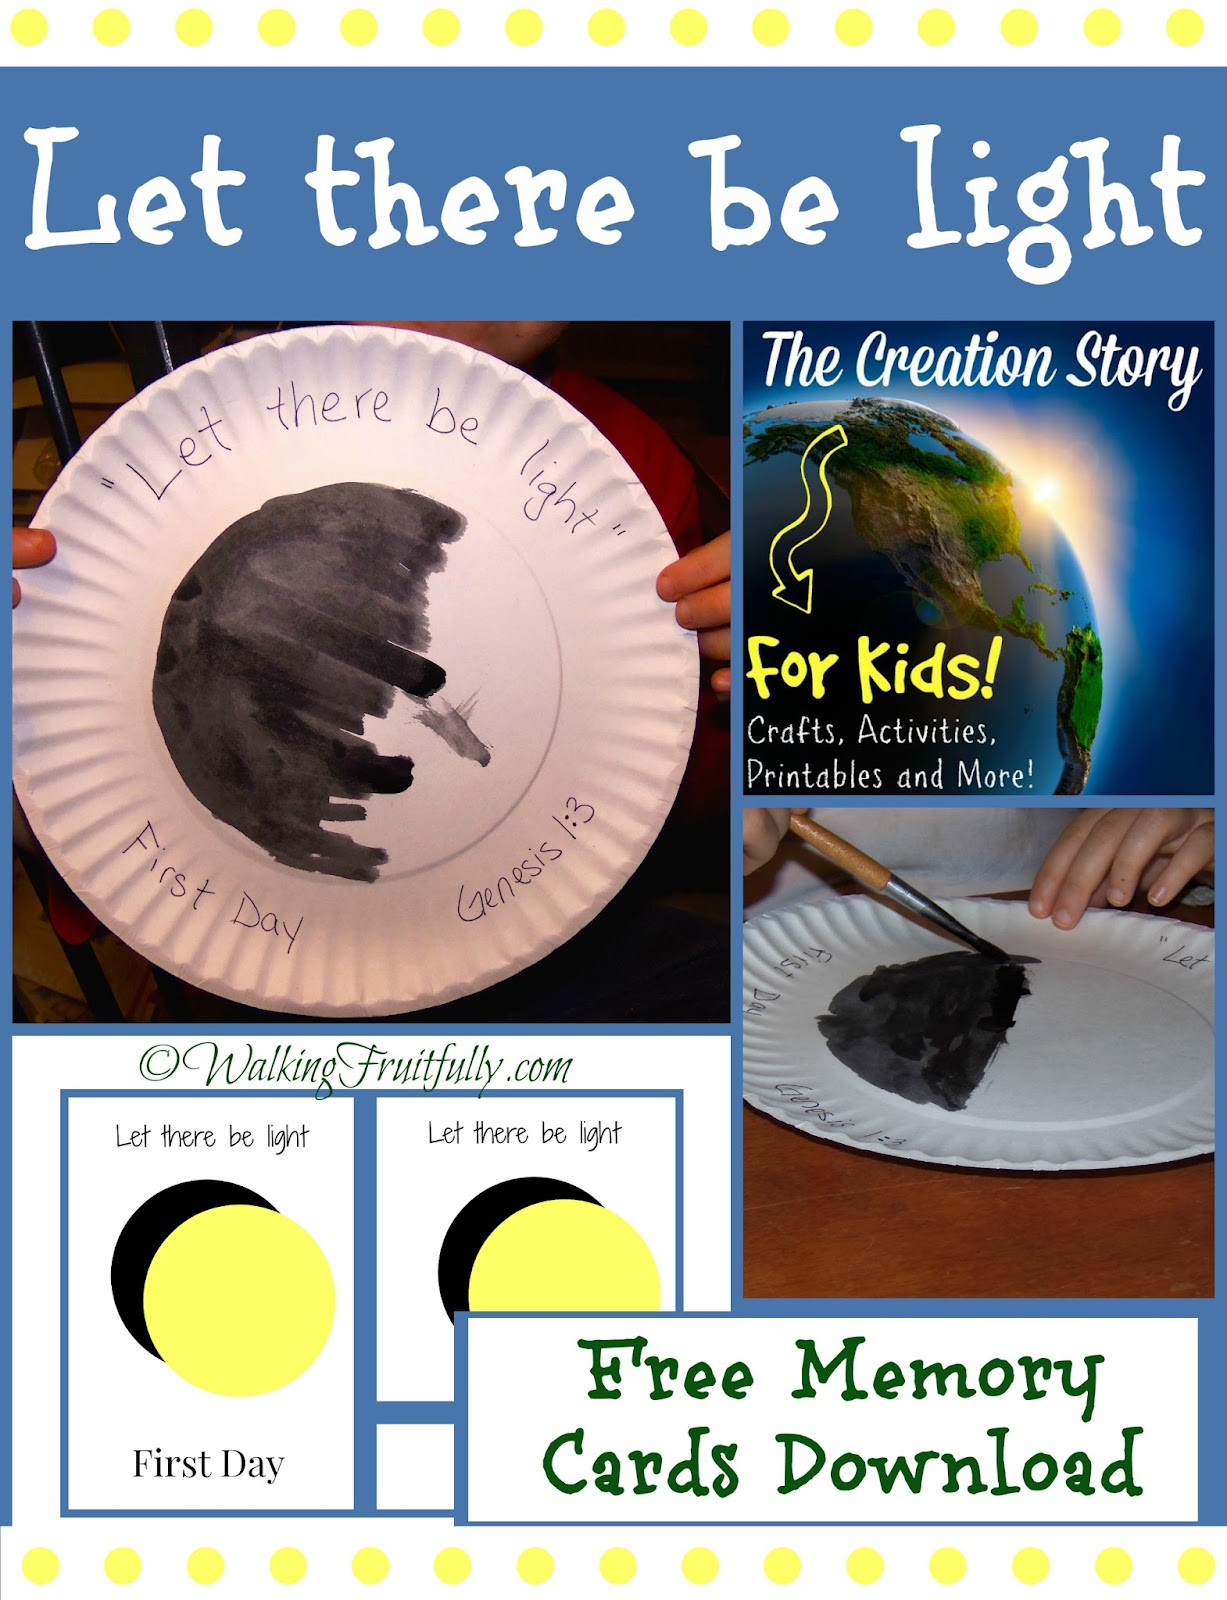 http://www.facebook.com/l.php?u=http%3A%2F%2Fwalkingfruitfully.com%2F2015%2F01%2Fcreation-kids-first-day-paper-plate-art-3-part-card.html&h=vAQHXCdIz